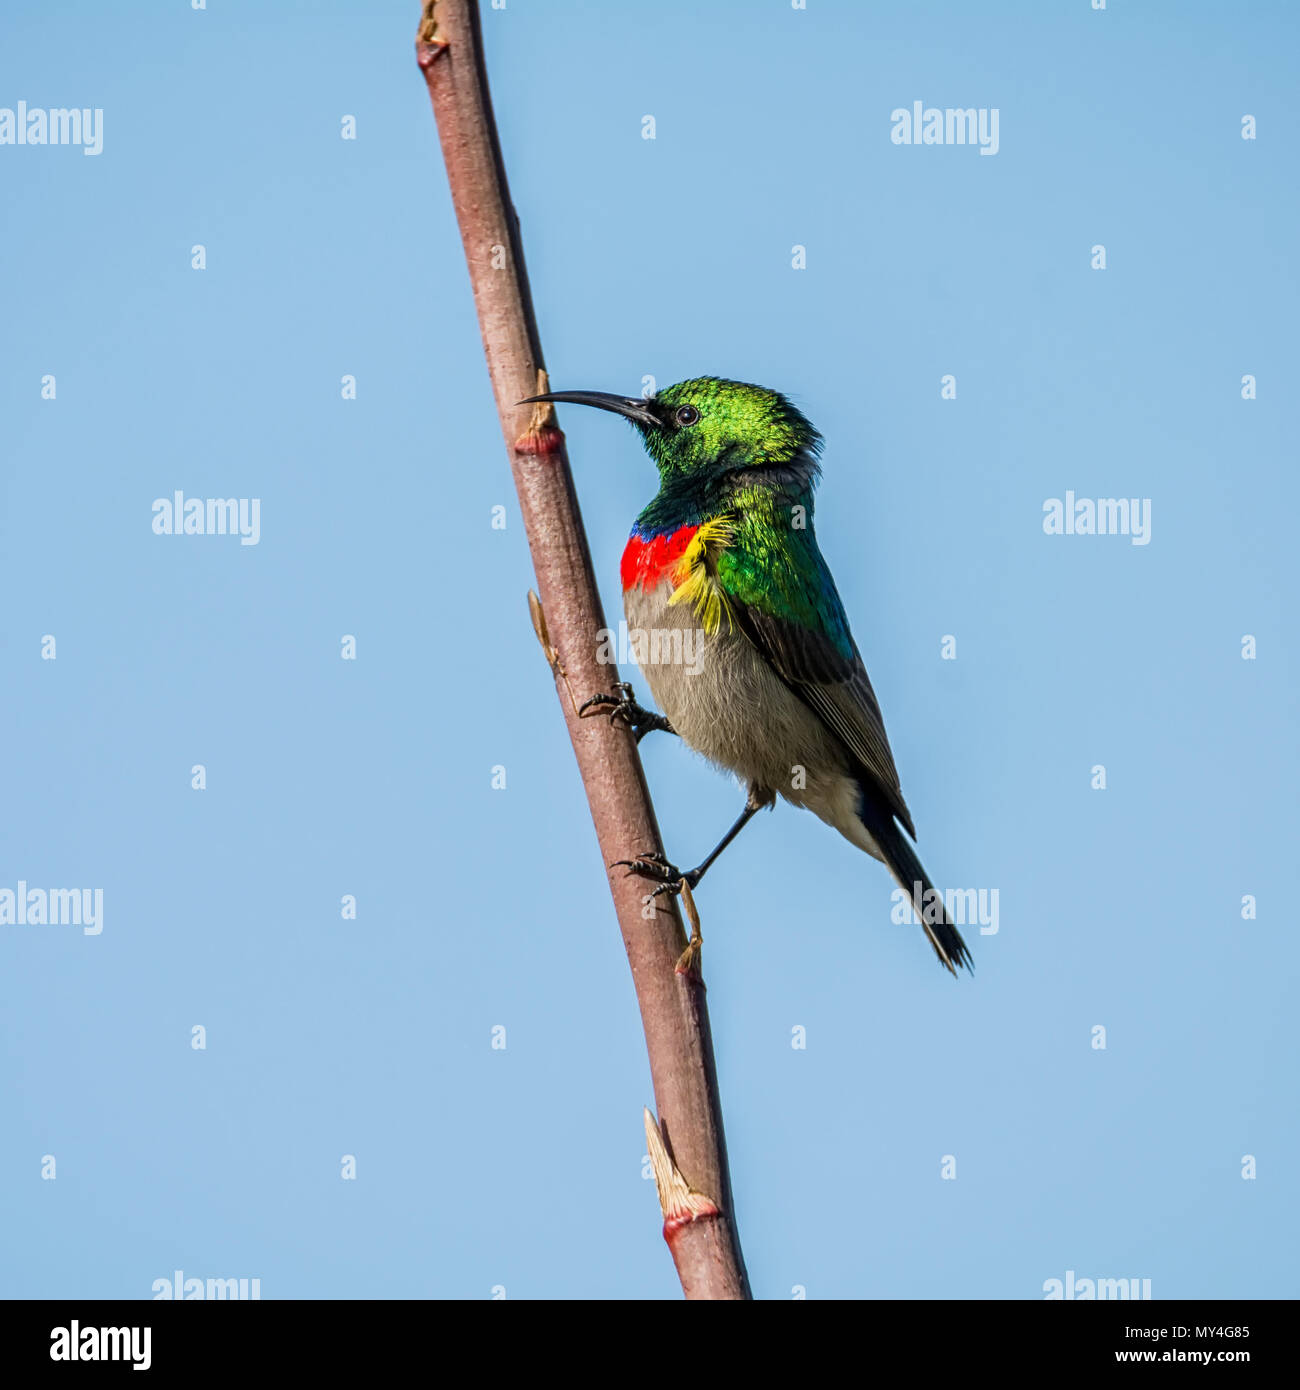 A male Double-collared Sunbird in full breeding plumage - Stock Image